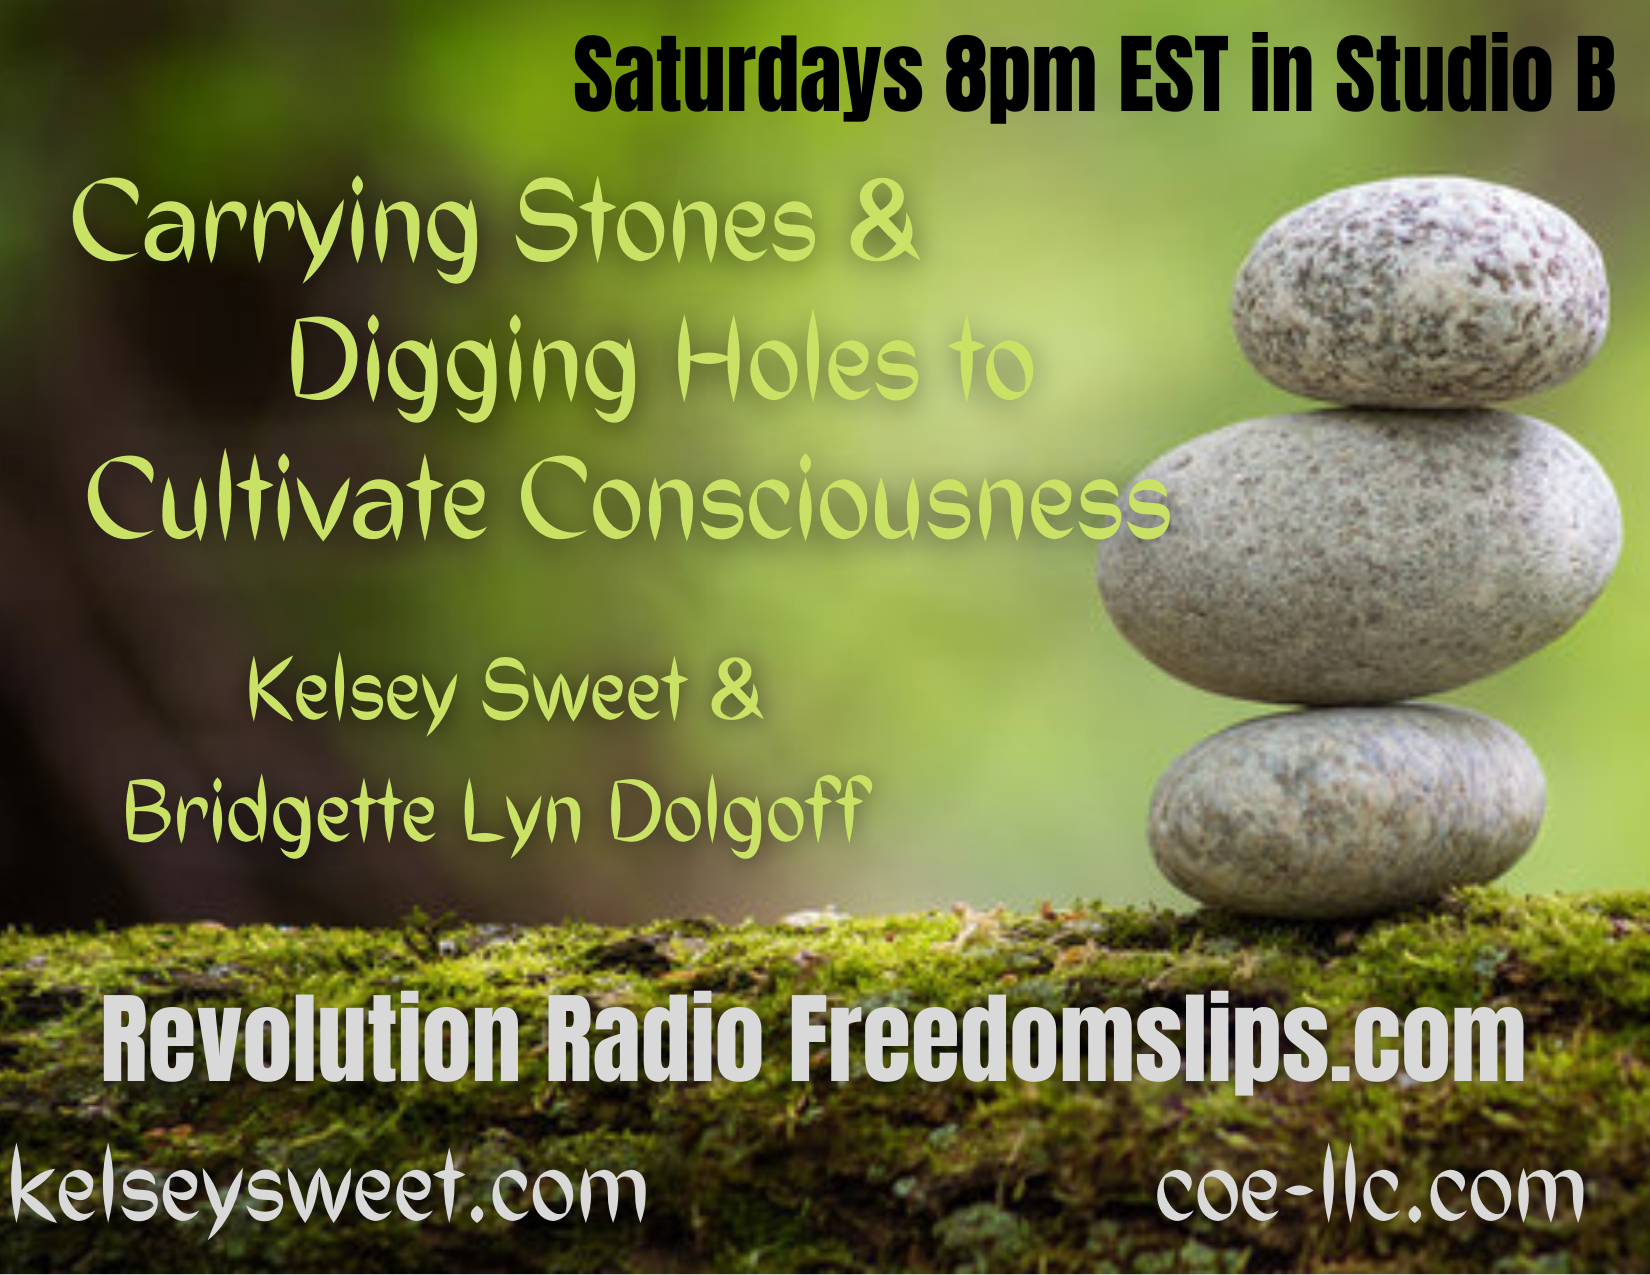 CARRYING STONES & DIGGING HOLES TO CULTIVATE CONSCIOUSNESS ON REVOLUTION RADIO Carrying-Stones-Digging-Holes-to-Cultivate-Consciousness